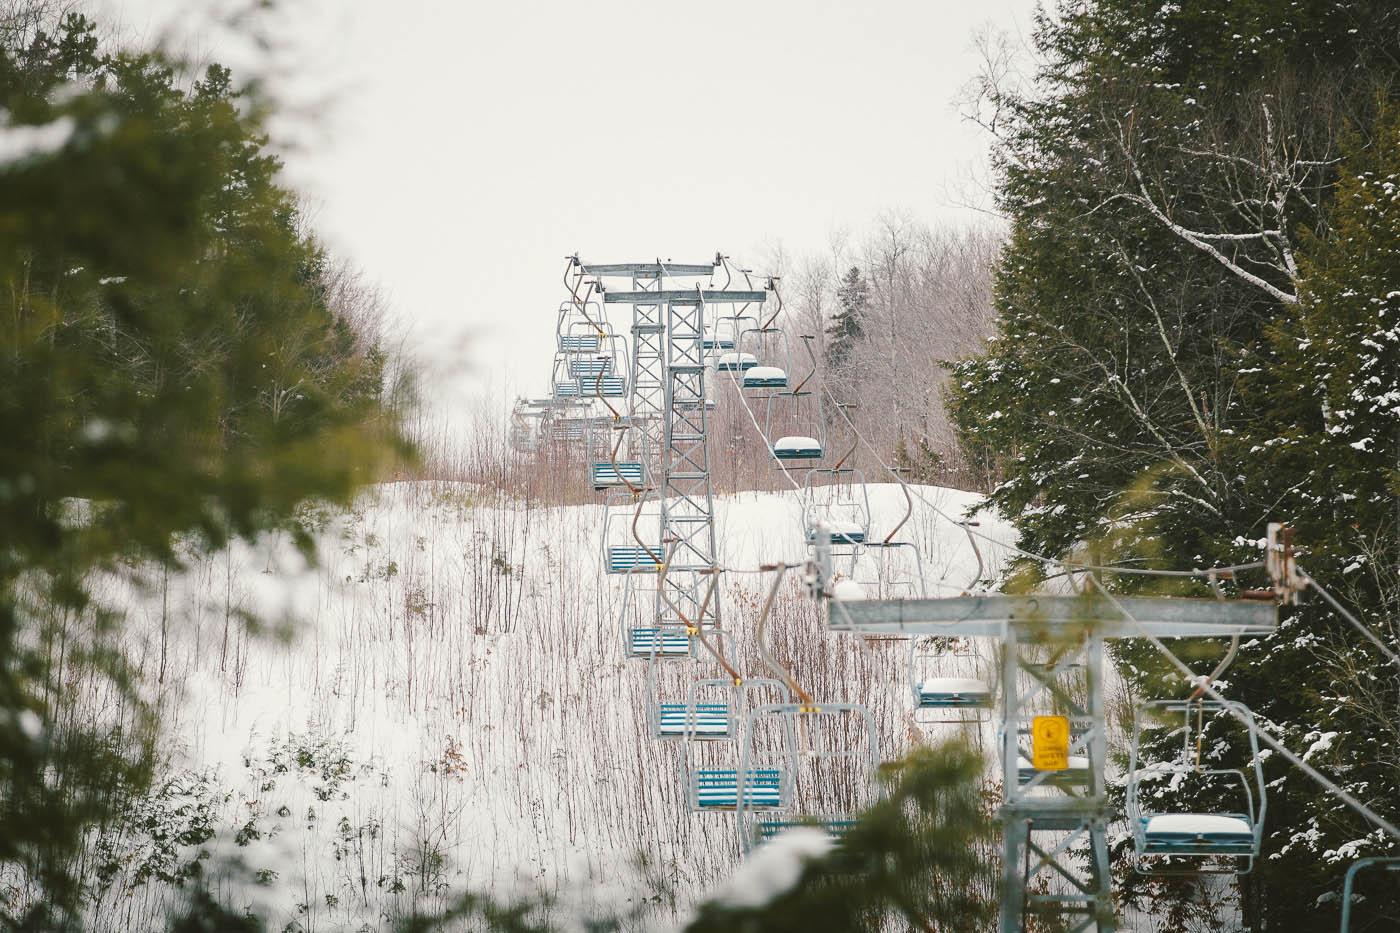 This old lift will spin once again, starting this winter. PHOTO: Justin Cash